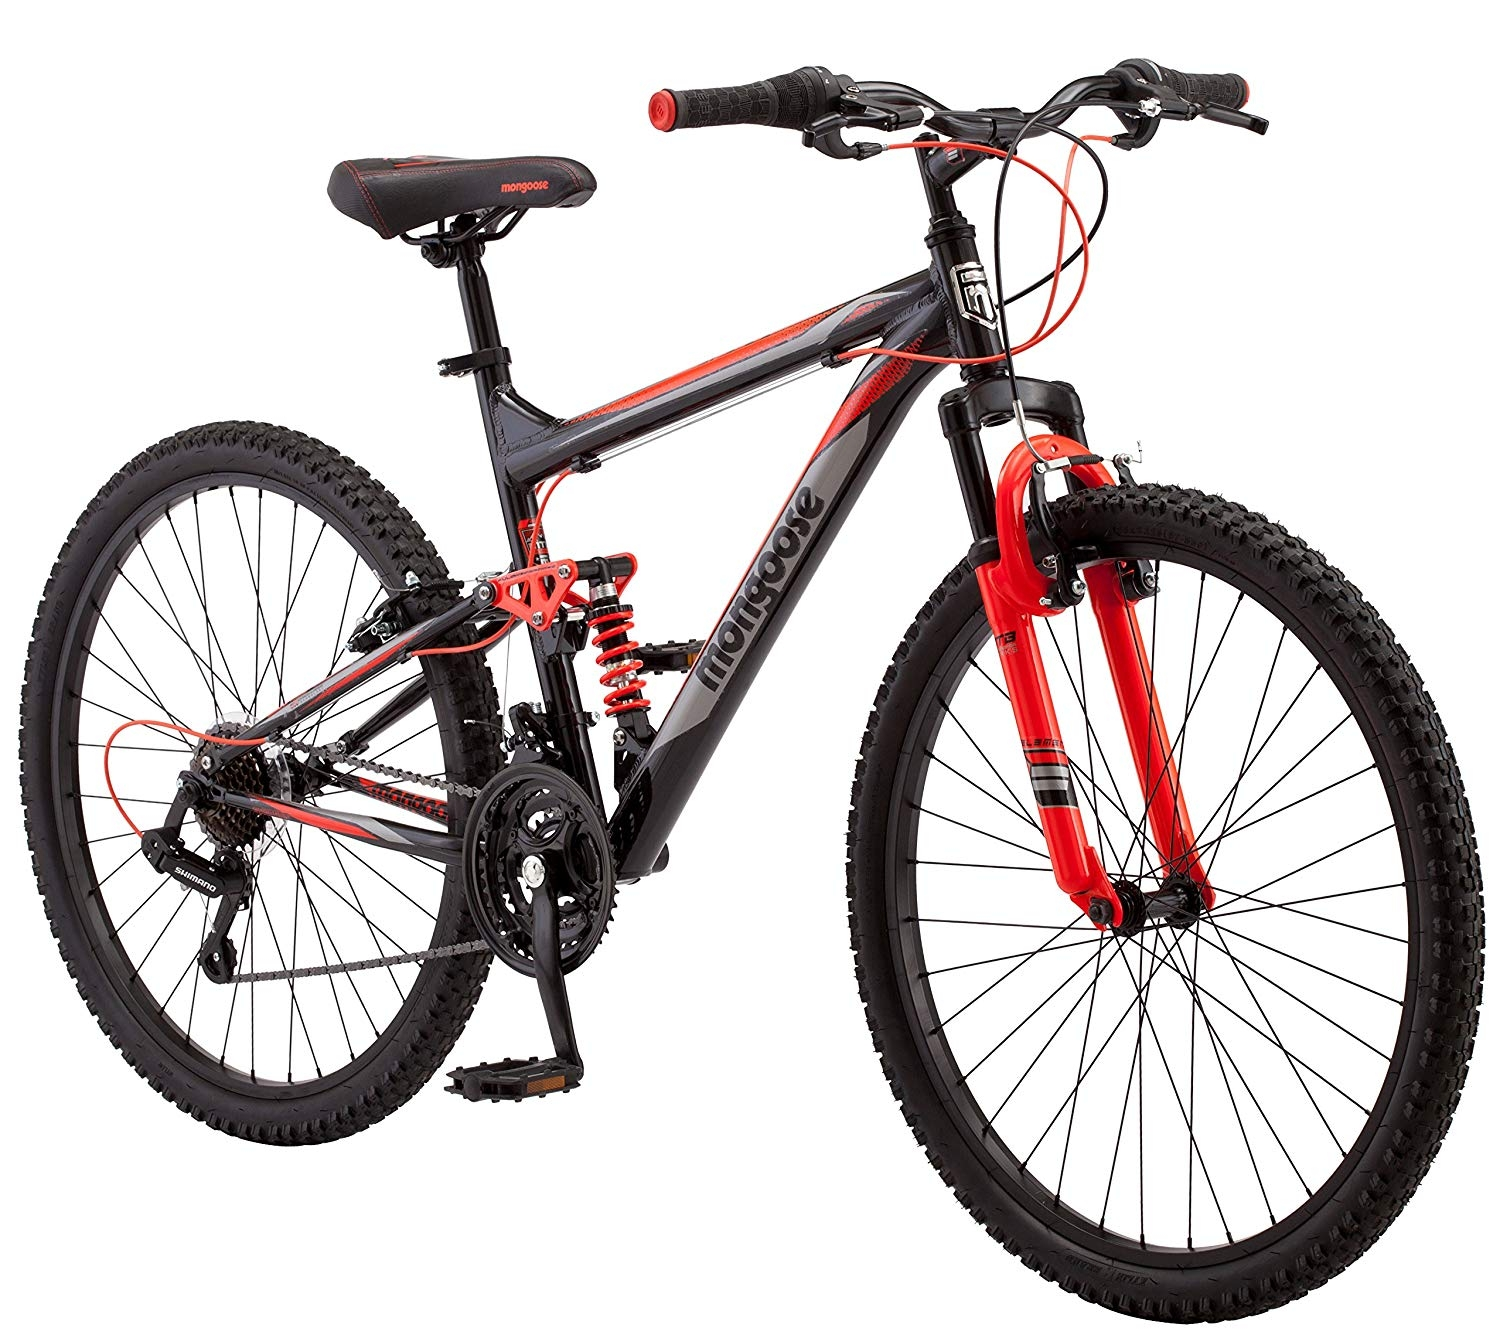 Mongoose Mountain Bike Status 2.2 for men 26 inch Review